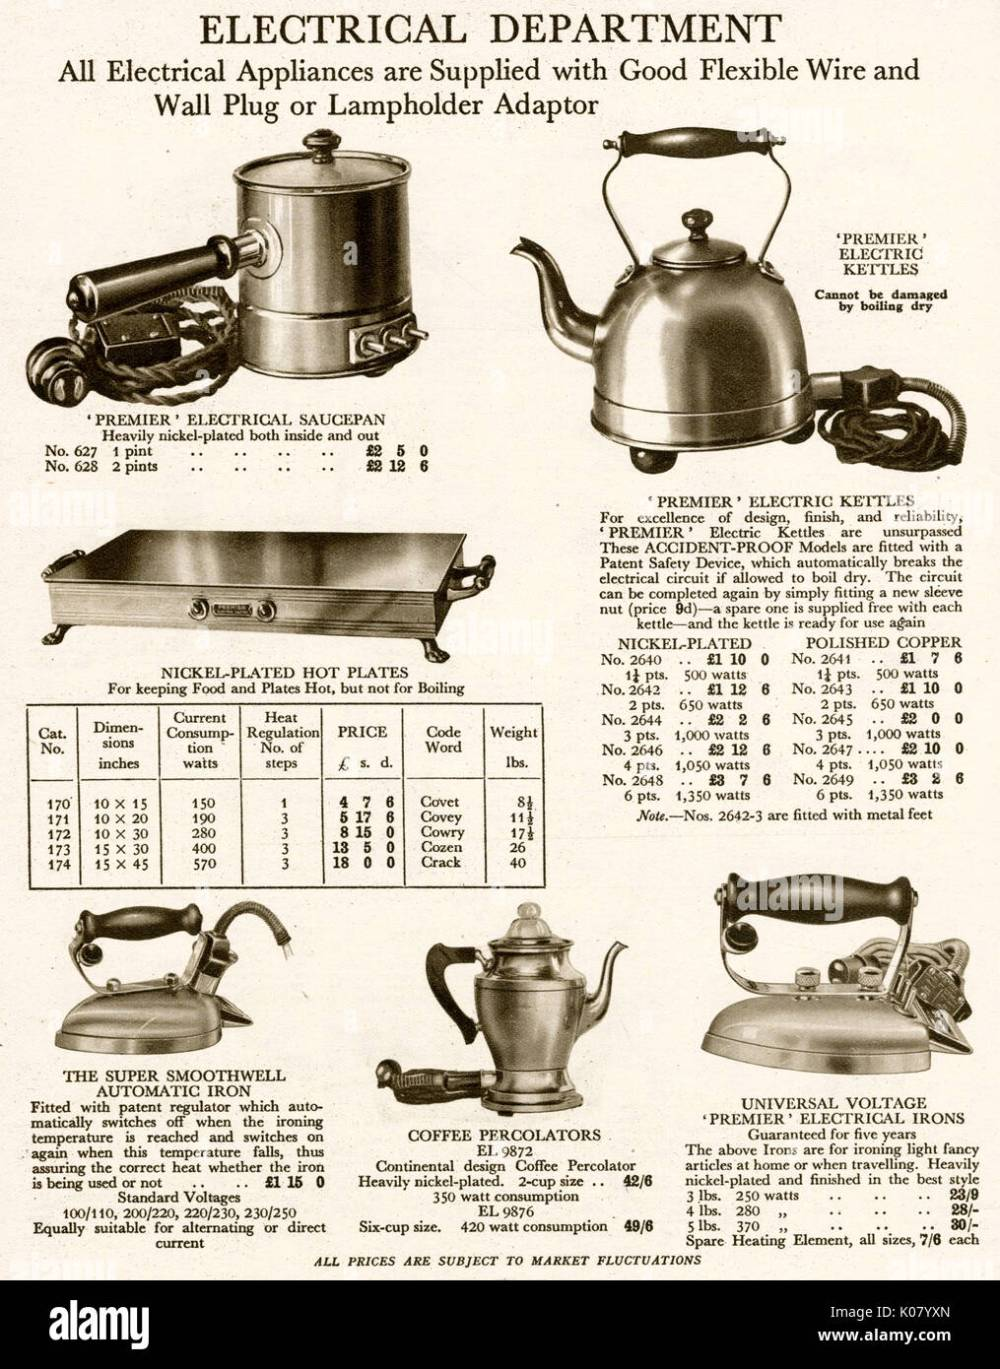 medium resolution of products from the harrod s catalogue electrical department household items with a flexible wire and wall plug date 1929